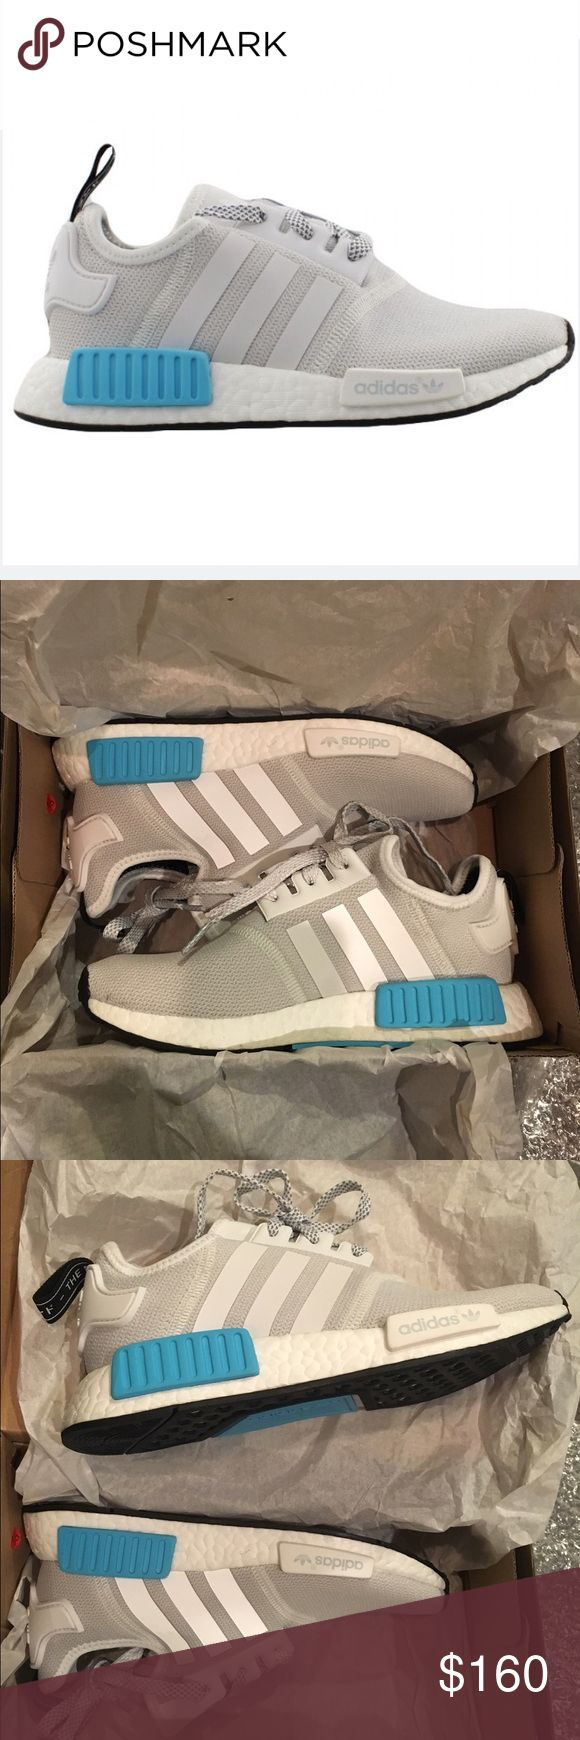 Adidas NMD R1 White/grey. Mismatched white/blue plugs. BNWT. Style: NMD R1 GS (S80207), released 08/18/2016. Neoprene and mesh upper. KIDS SIZE 4 (EU 36, fits women's 6). No trades. Serious offers ONLY. Adidas Shoes Sneakers